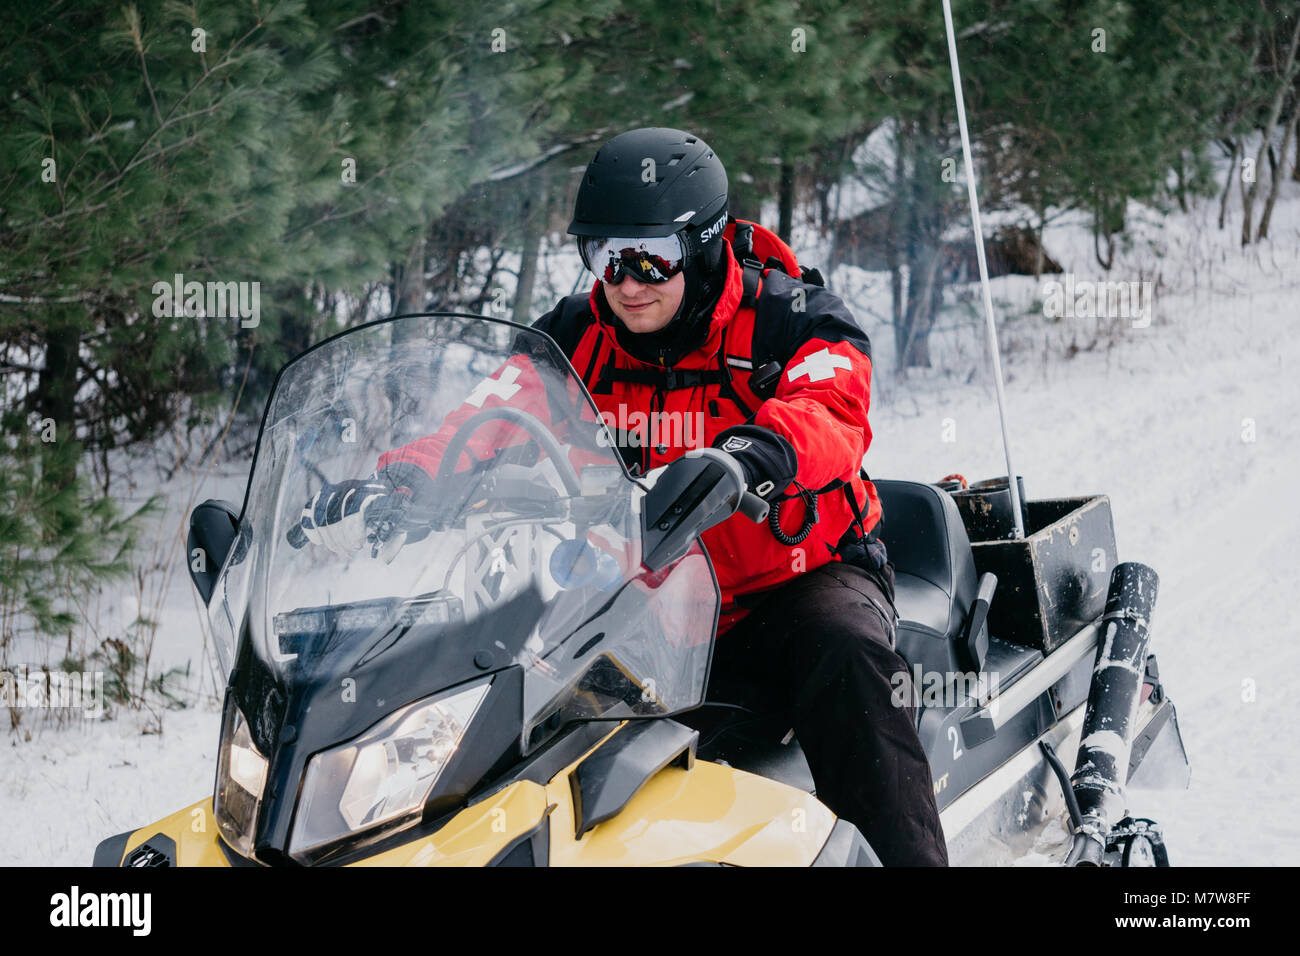 Ski patroller riding snowmobile - Stock Image